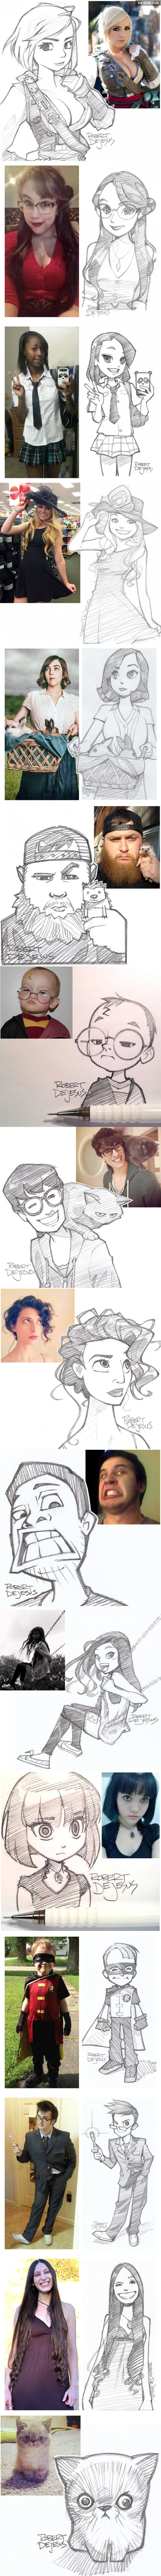 People And Their Cartoon Version § Find more artworks: www.pinterest.com/aalishev/pins